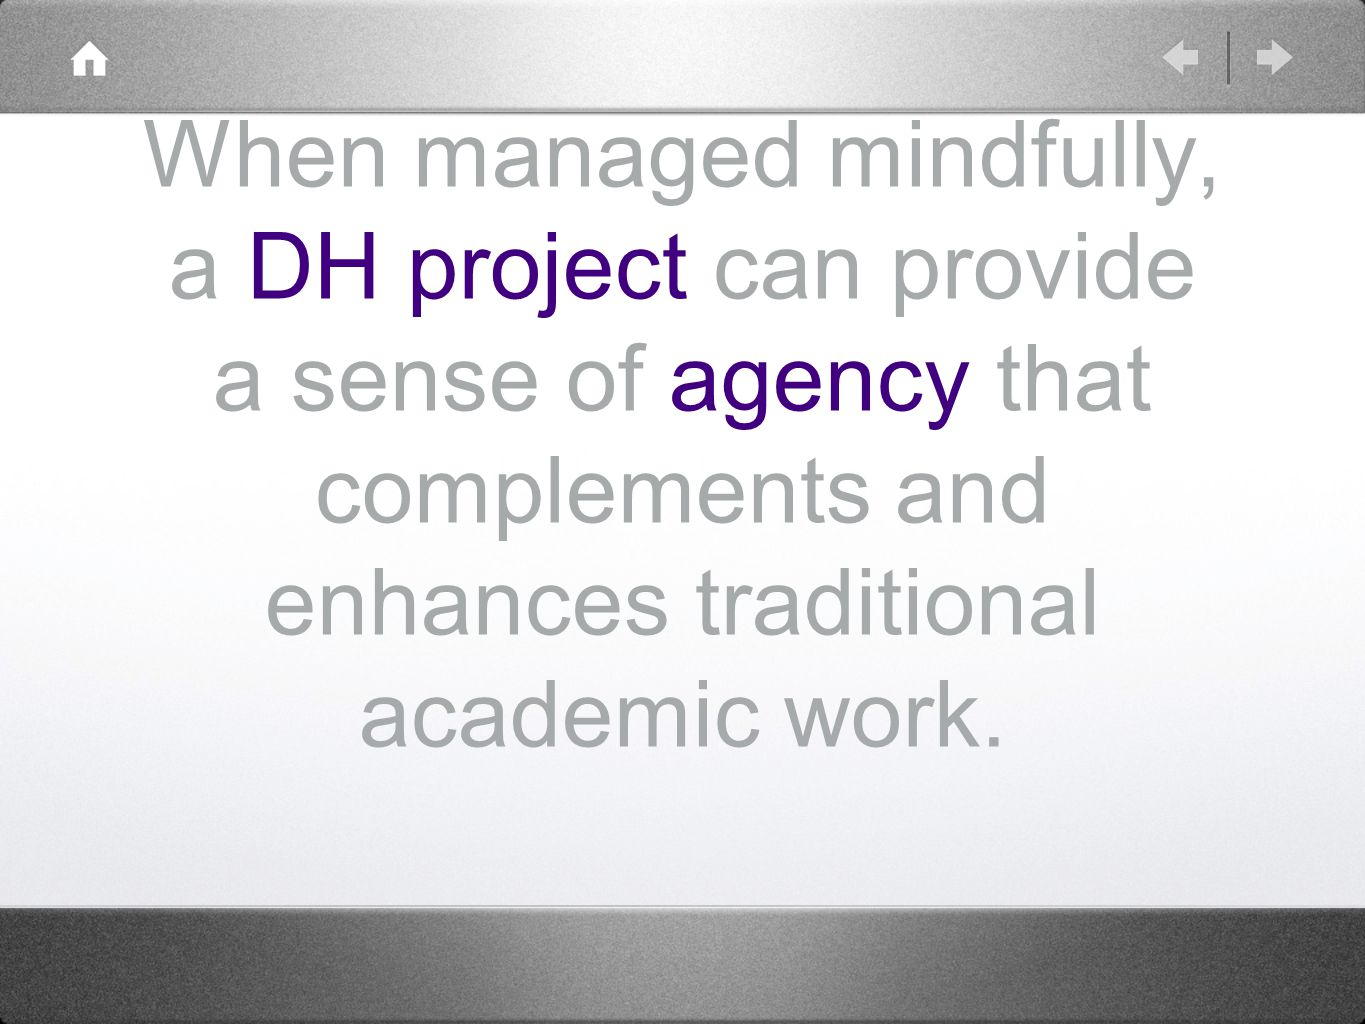 When managed mindfully, a DH project can provide a sense of agency that complements and enhances traditional academic work.